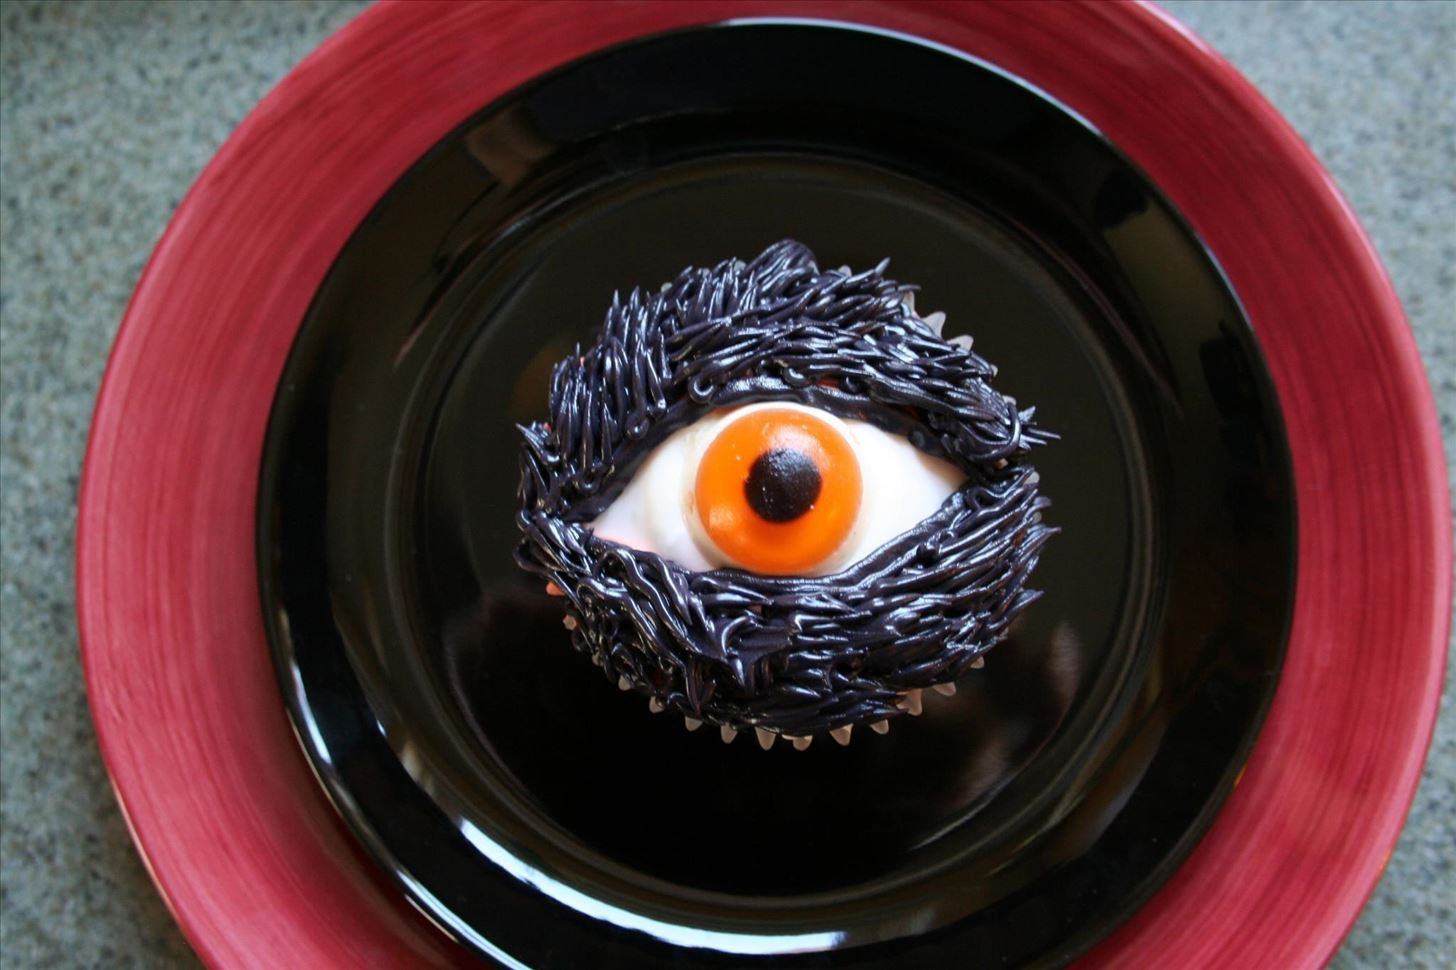 6unnerving eyeball cupcakes - Halloween Scary Desserts